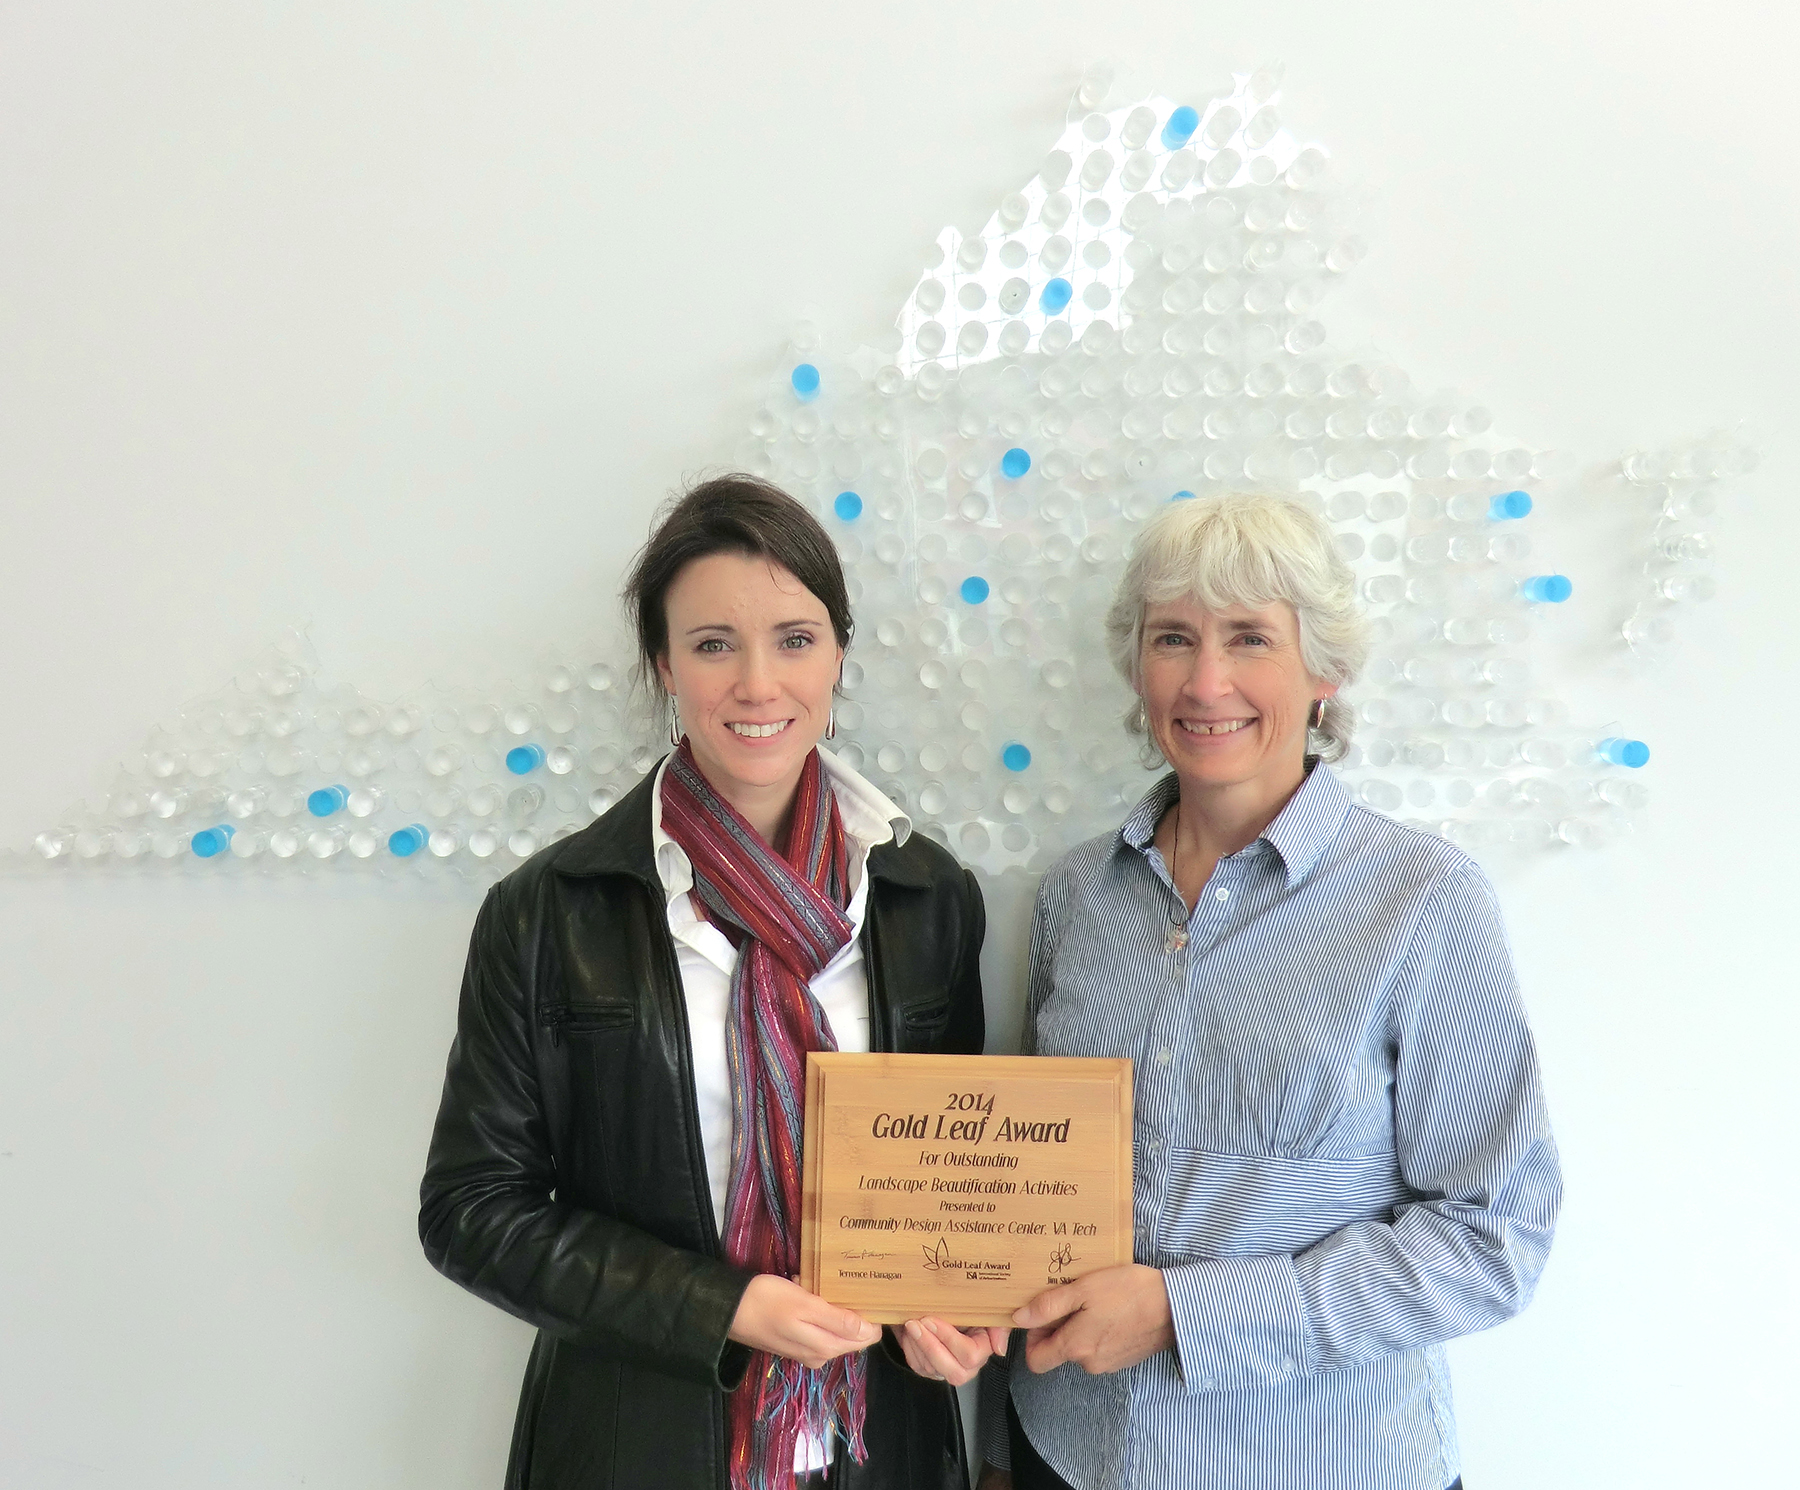 Lara Browning and Elizabeth Gilboy hold the wooden plaque they received for the Gold Leaf Award.